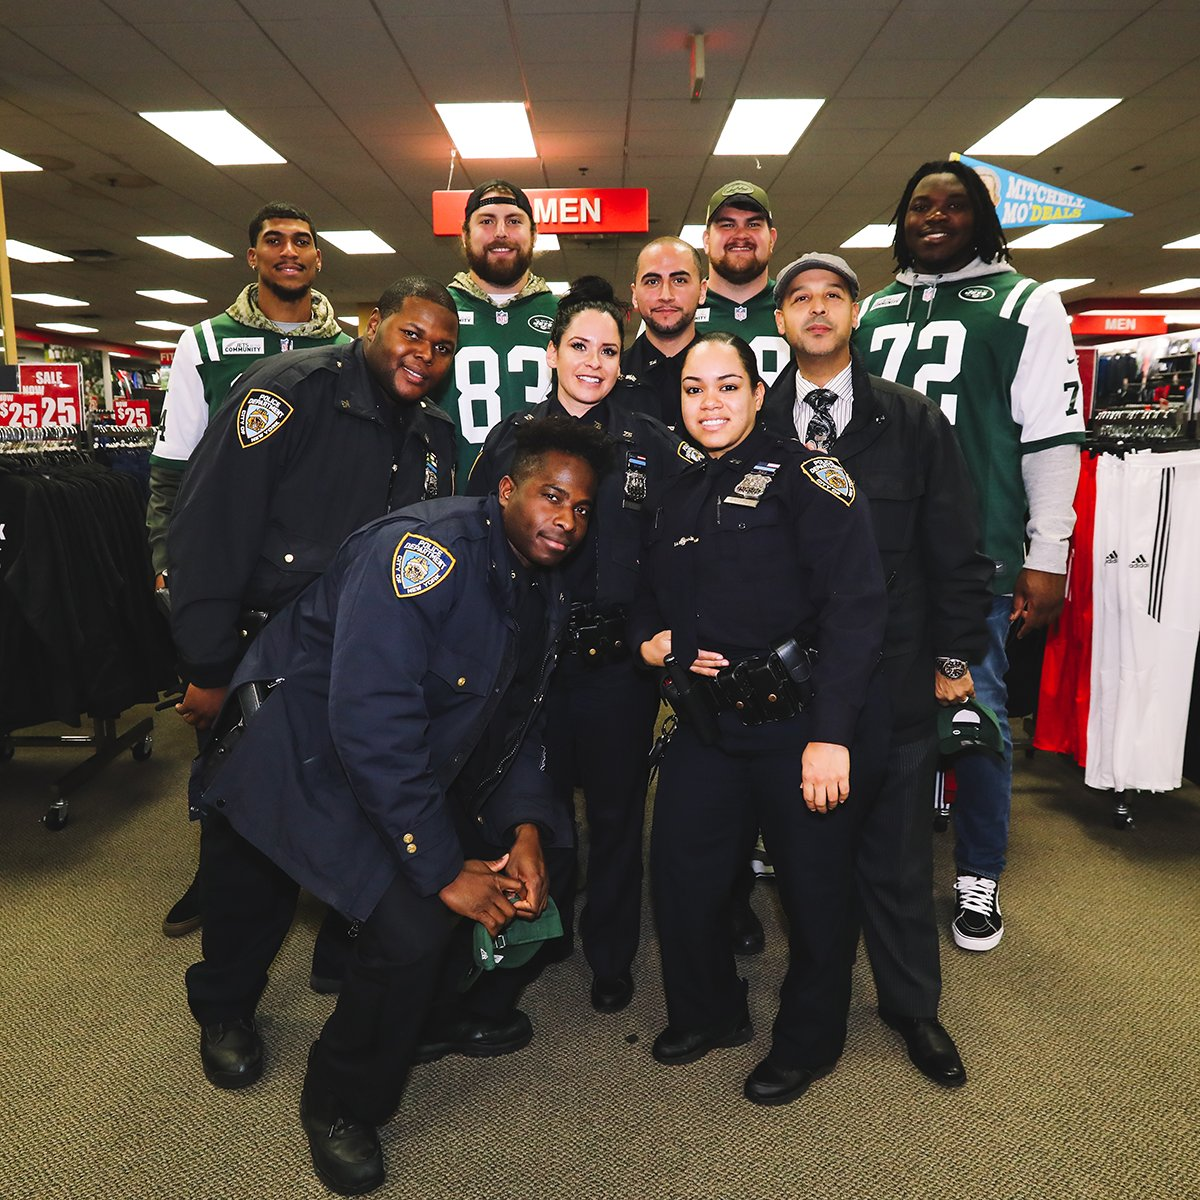 We teamed up with @NYPD75Pct last night to host 25 students on a shopping spree at @Modells!   📸 https://t.co/hbUdETI1sA